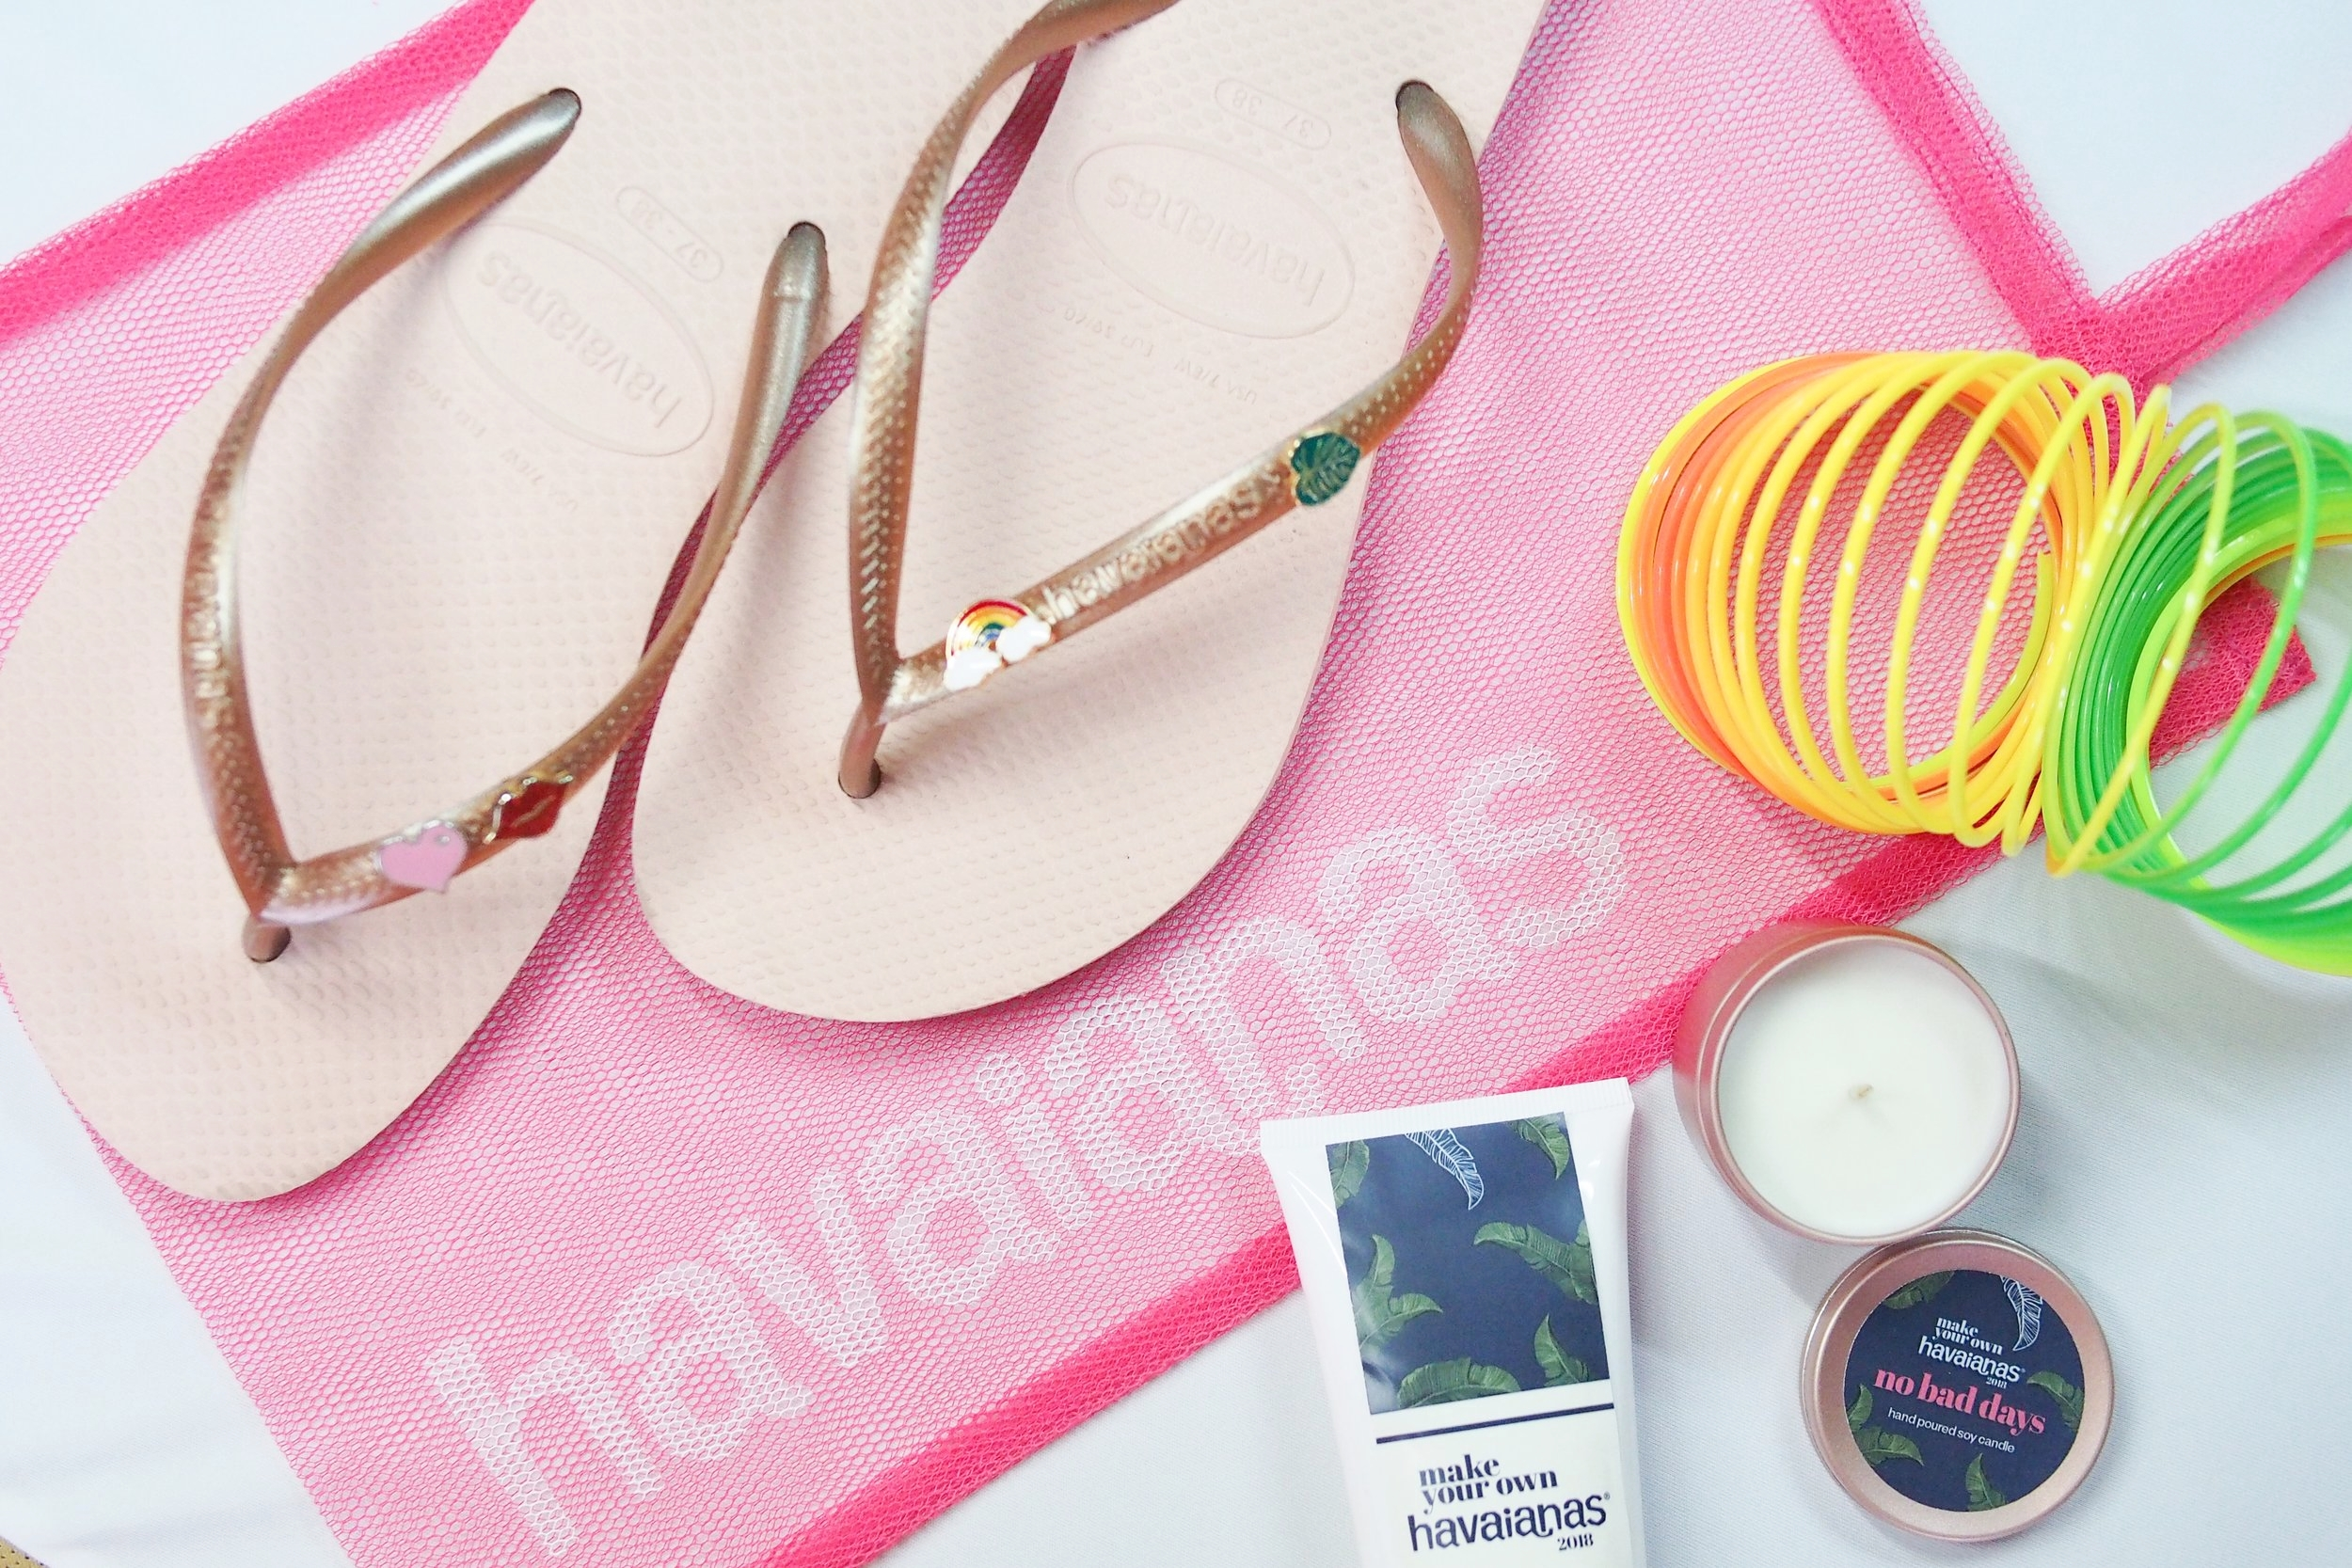 22f31f4c2 I got the cutest flipflops at the Make Your Own Havaianas 2018 event ...